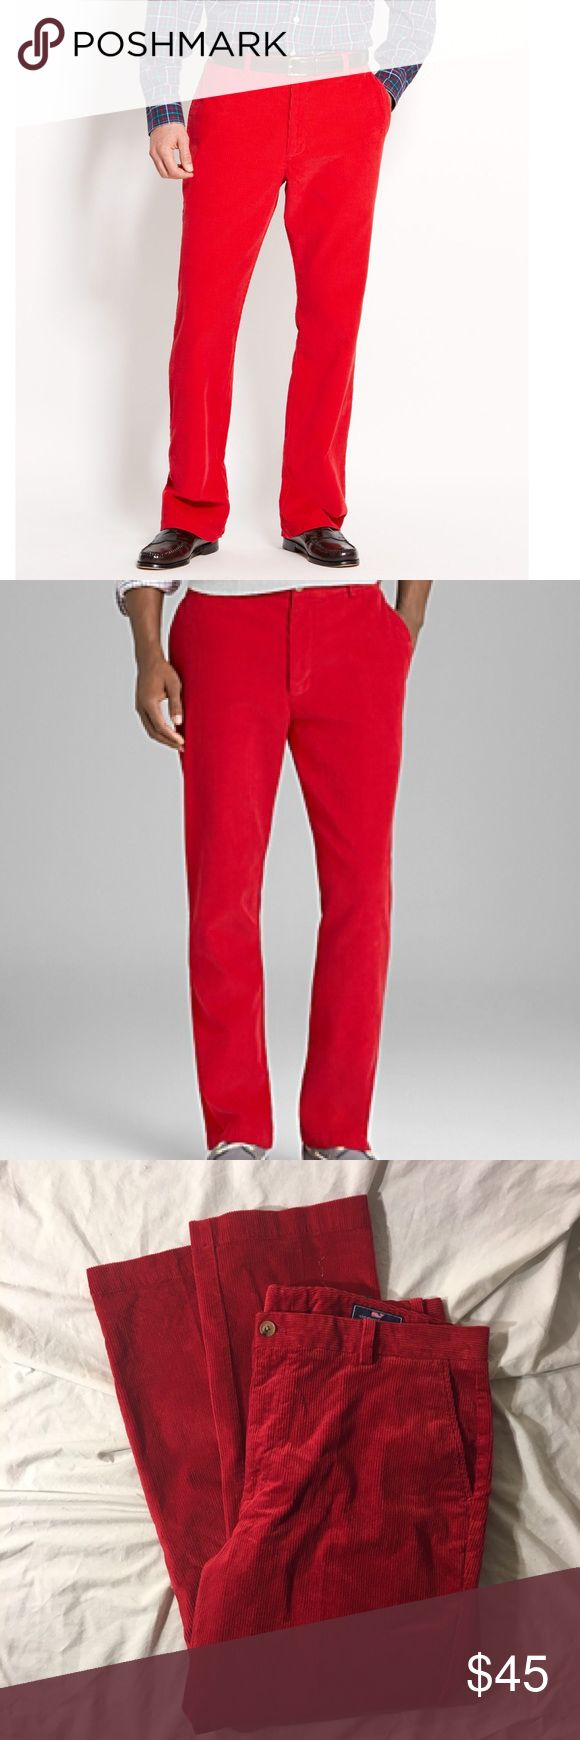 Vineyard Vines Slim Fit Beaker Red Cords Pants These are new with tag. The stock hoots accurately show fit. Length 30. Vineyard Vines Pants Corduroy